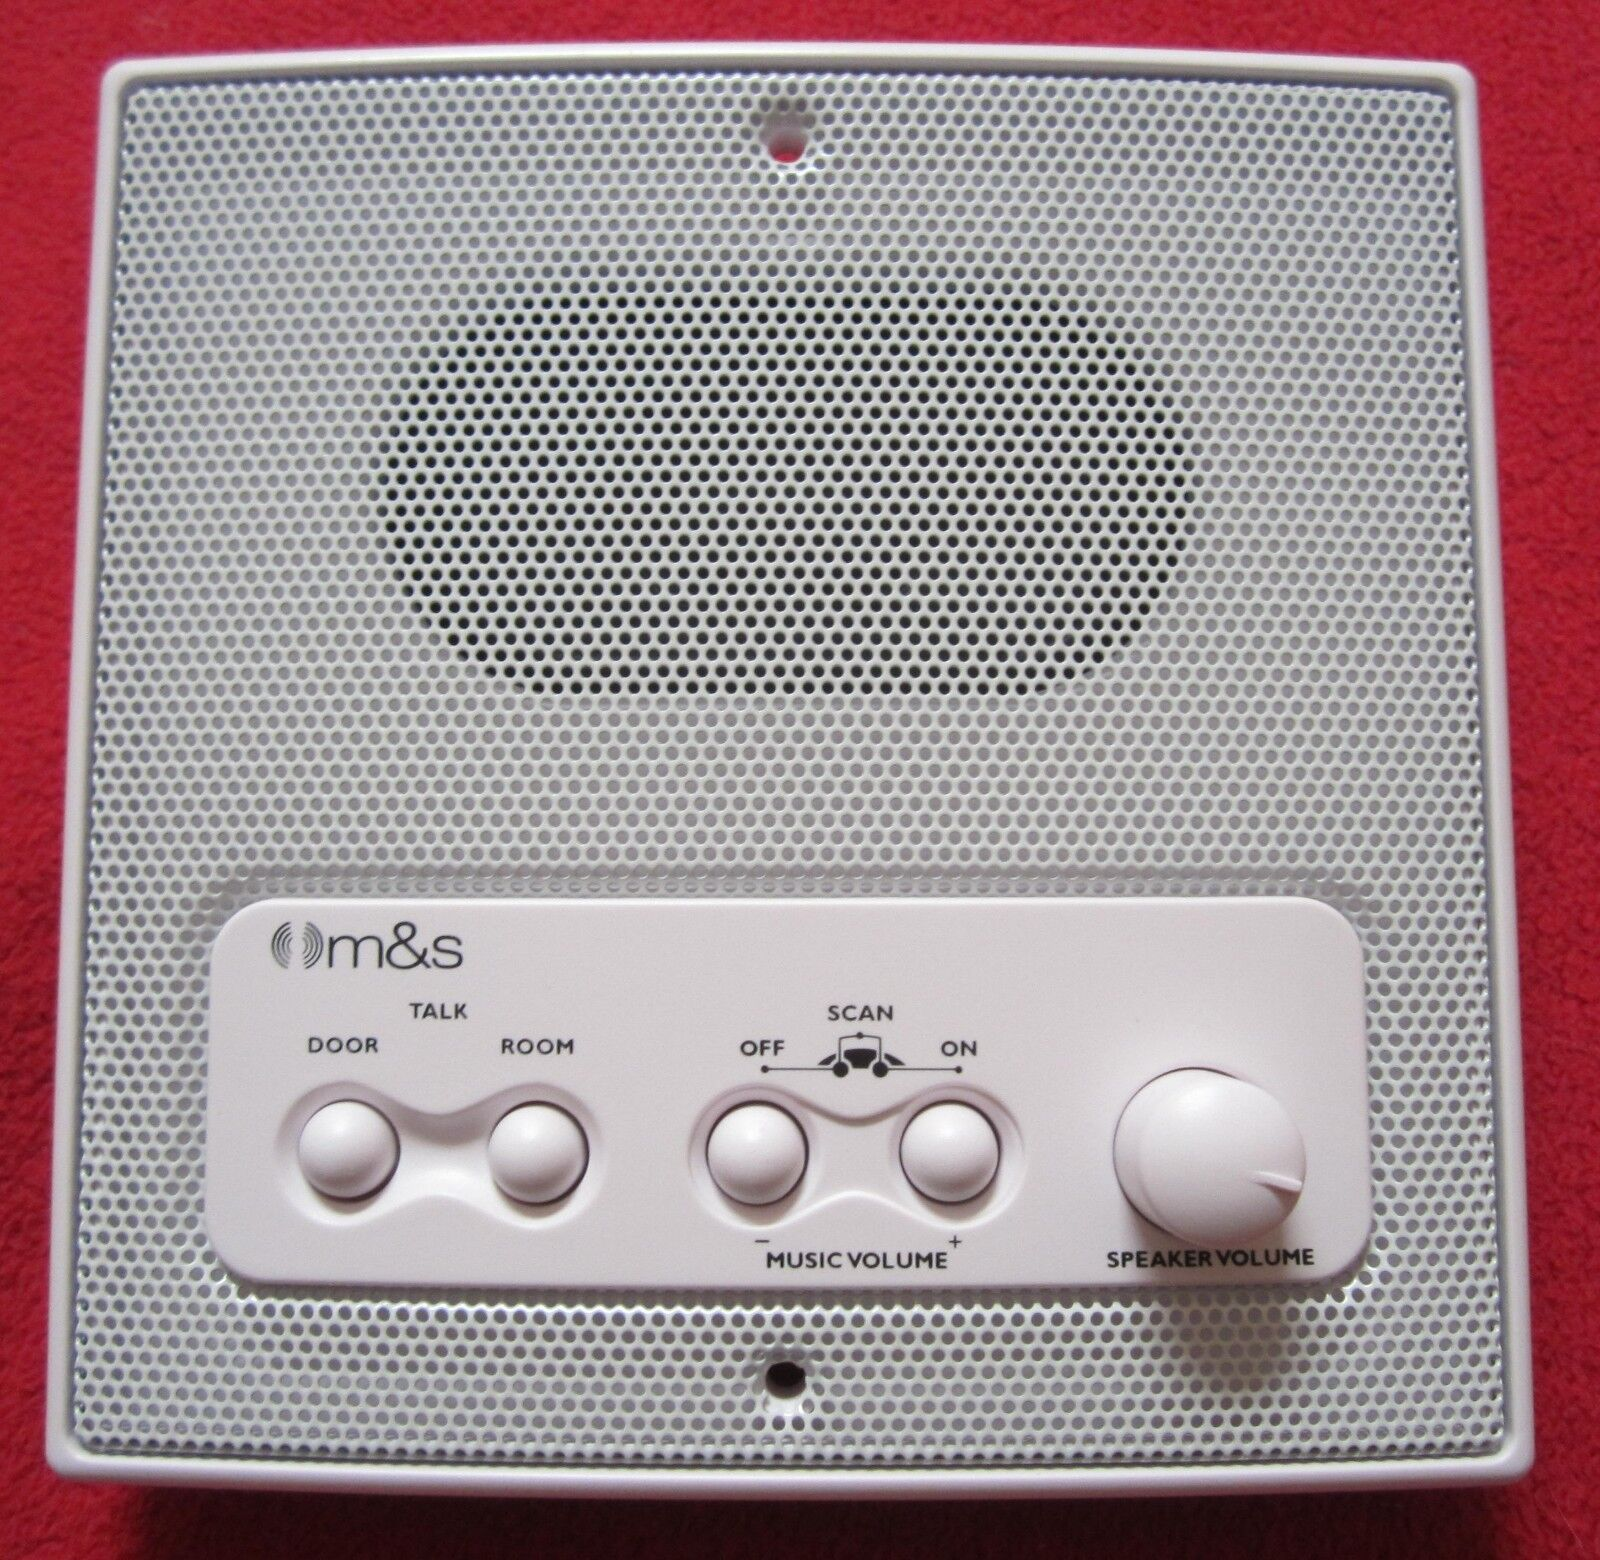 New M&S DMC3RS Three Wire Intercom Room Station - White